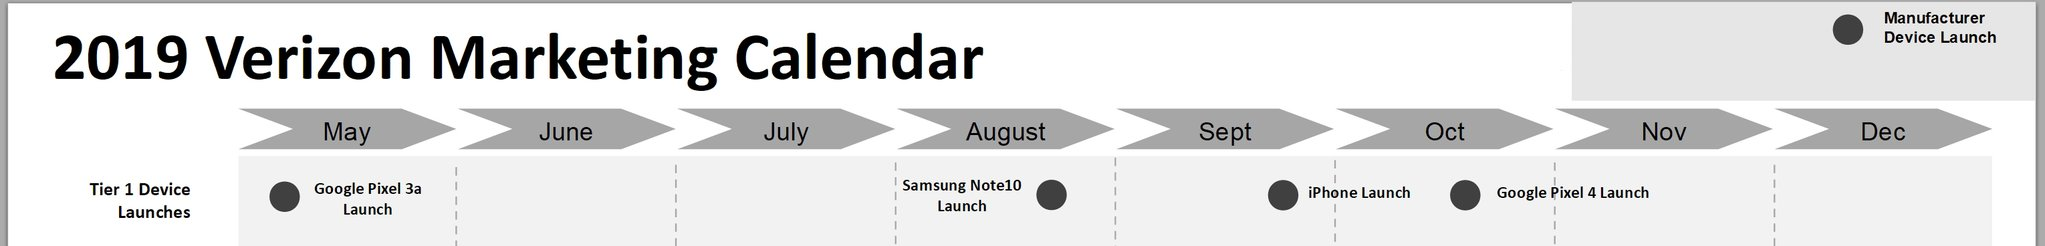 Samsung GALAXY Note 10 lansare august verizon